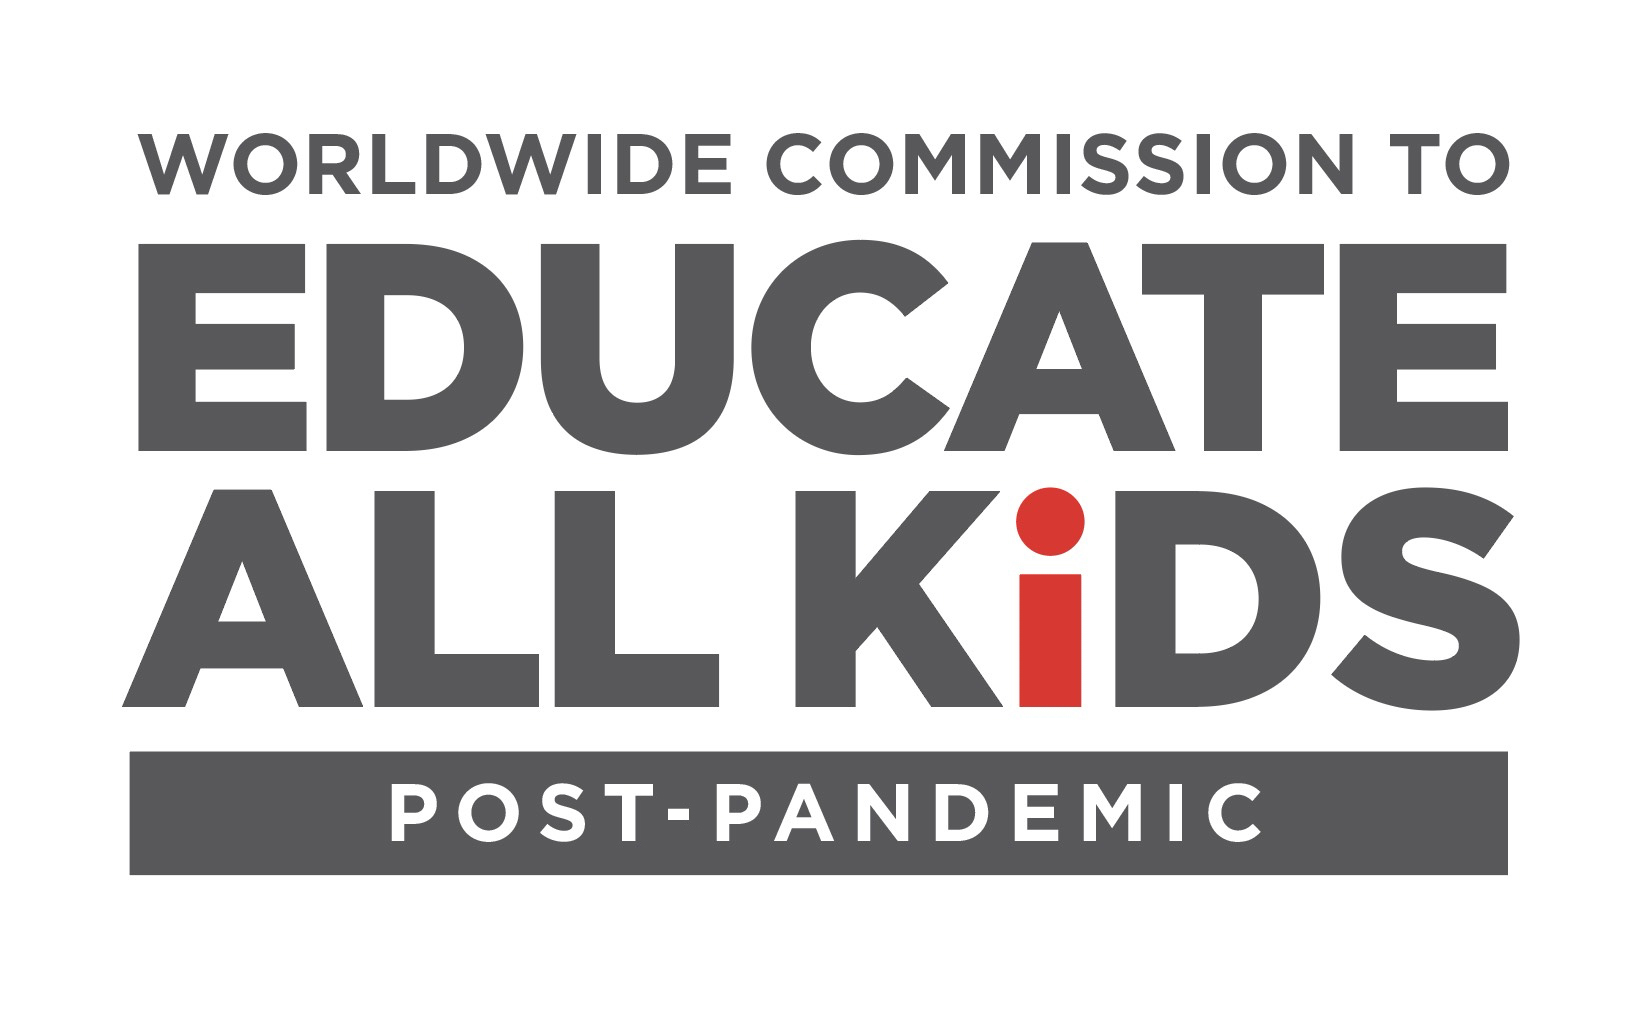 Summits of the Worldwide Commission to Educate All Kids (Post-Pandemic)